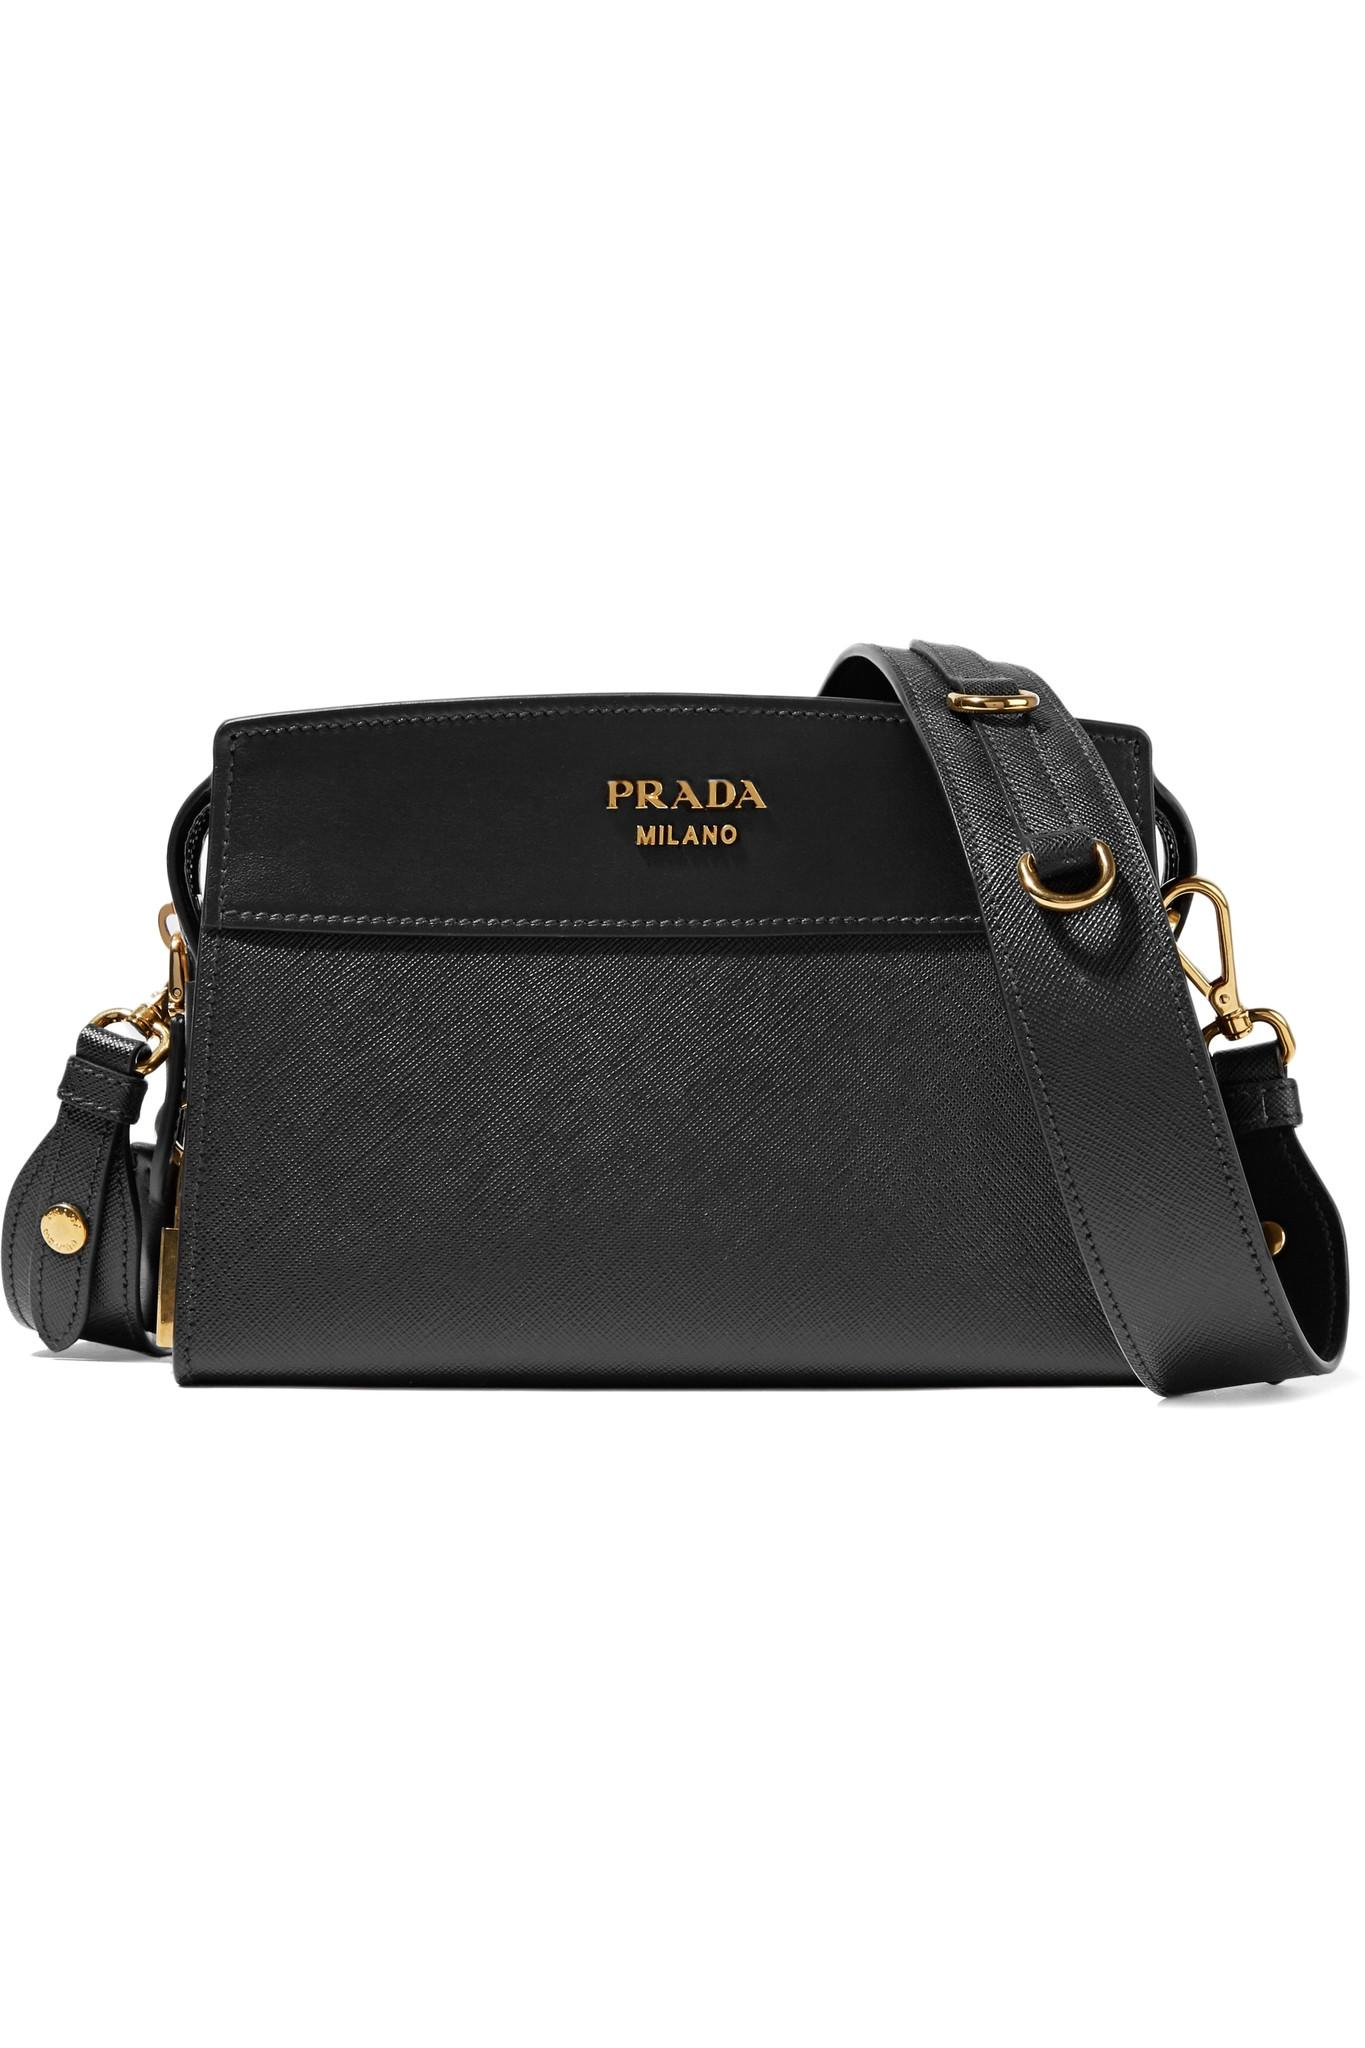 6aa261d6e0e9 ... sweden prada esplanade small textured leather shoulder bag in black lyst  968f3 40df0